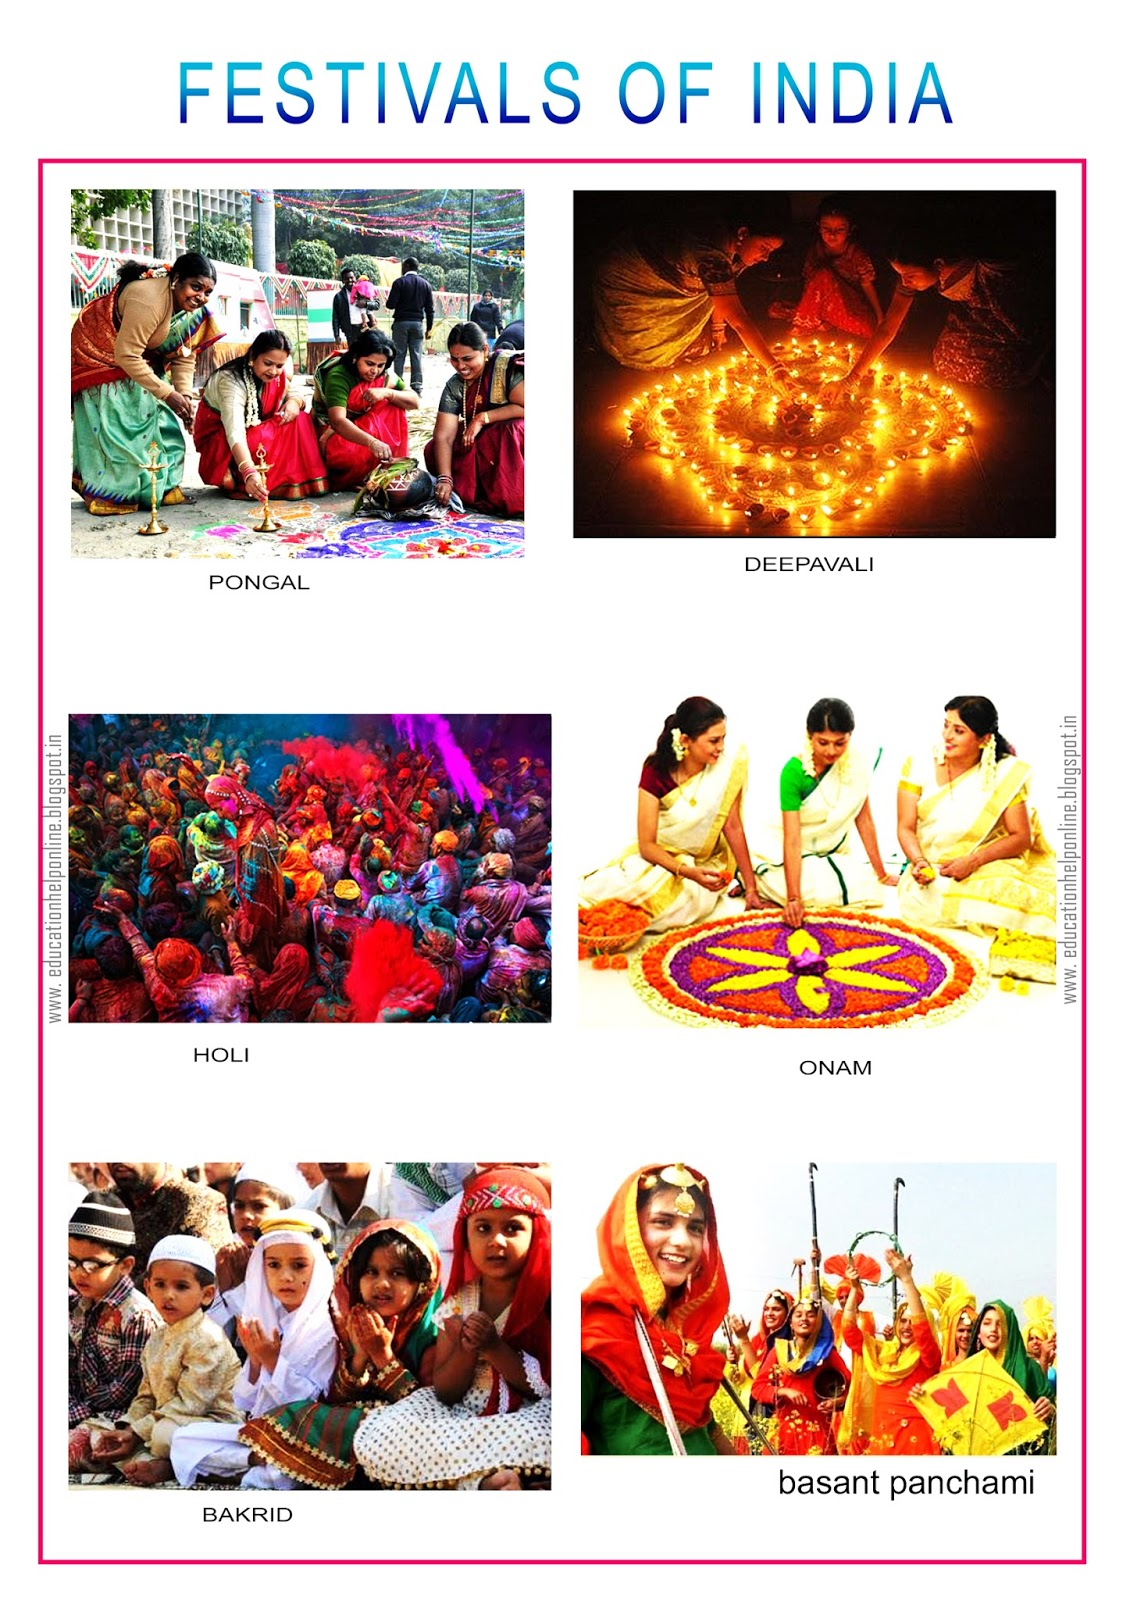 importance of festivals of india in hindi Importance of festivals of india in hindi festivals, of many types, serve to meet specific needs, as well as to provide entertainmentthese times of celebration offer a sense of belonging.